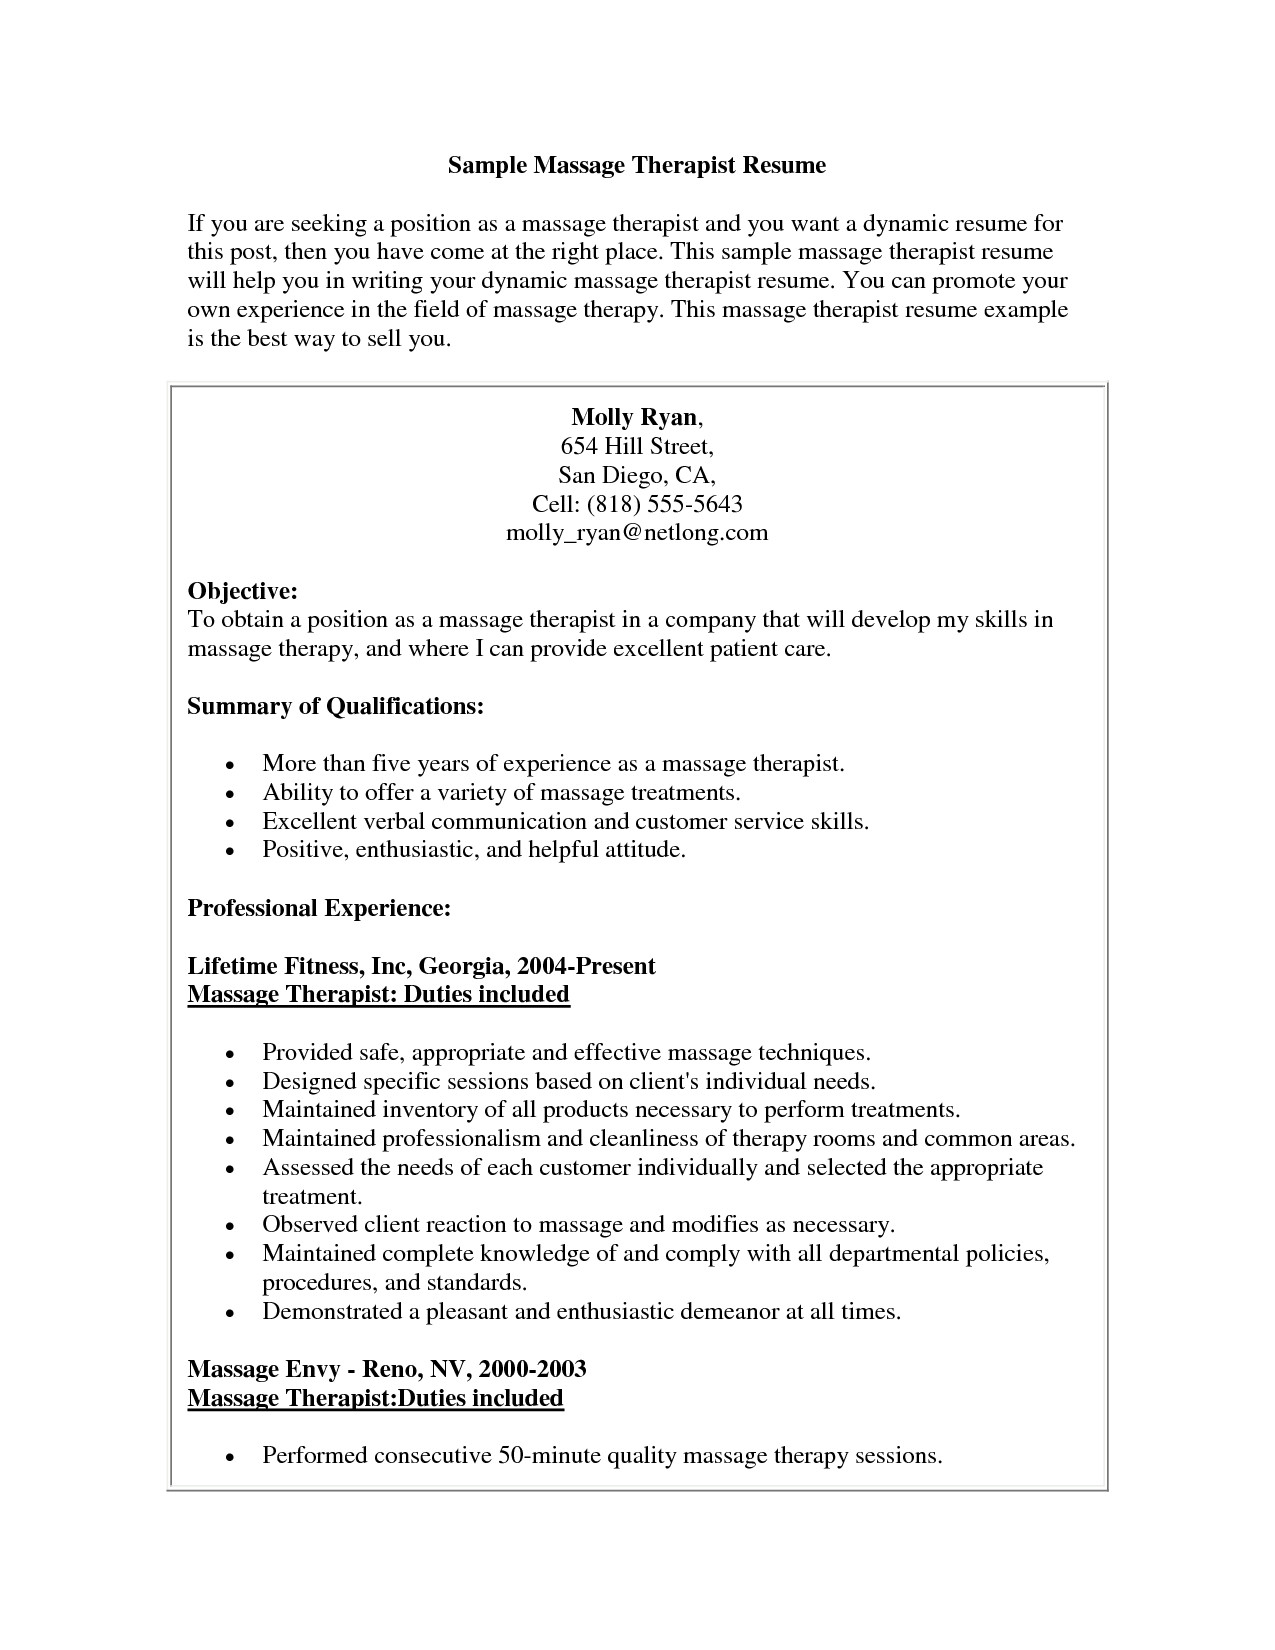 massage therapist resume template Collection-Massage therapist Resume Example Beautiful Massage therapist Resume Sample Massage therapist Resume Sample Massage therapist 17-l